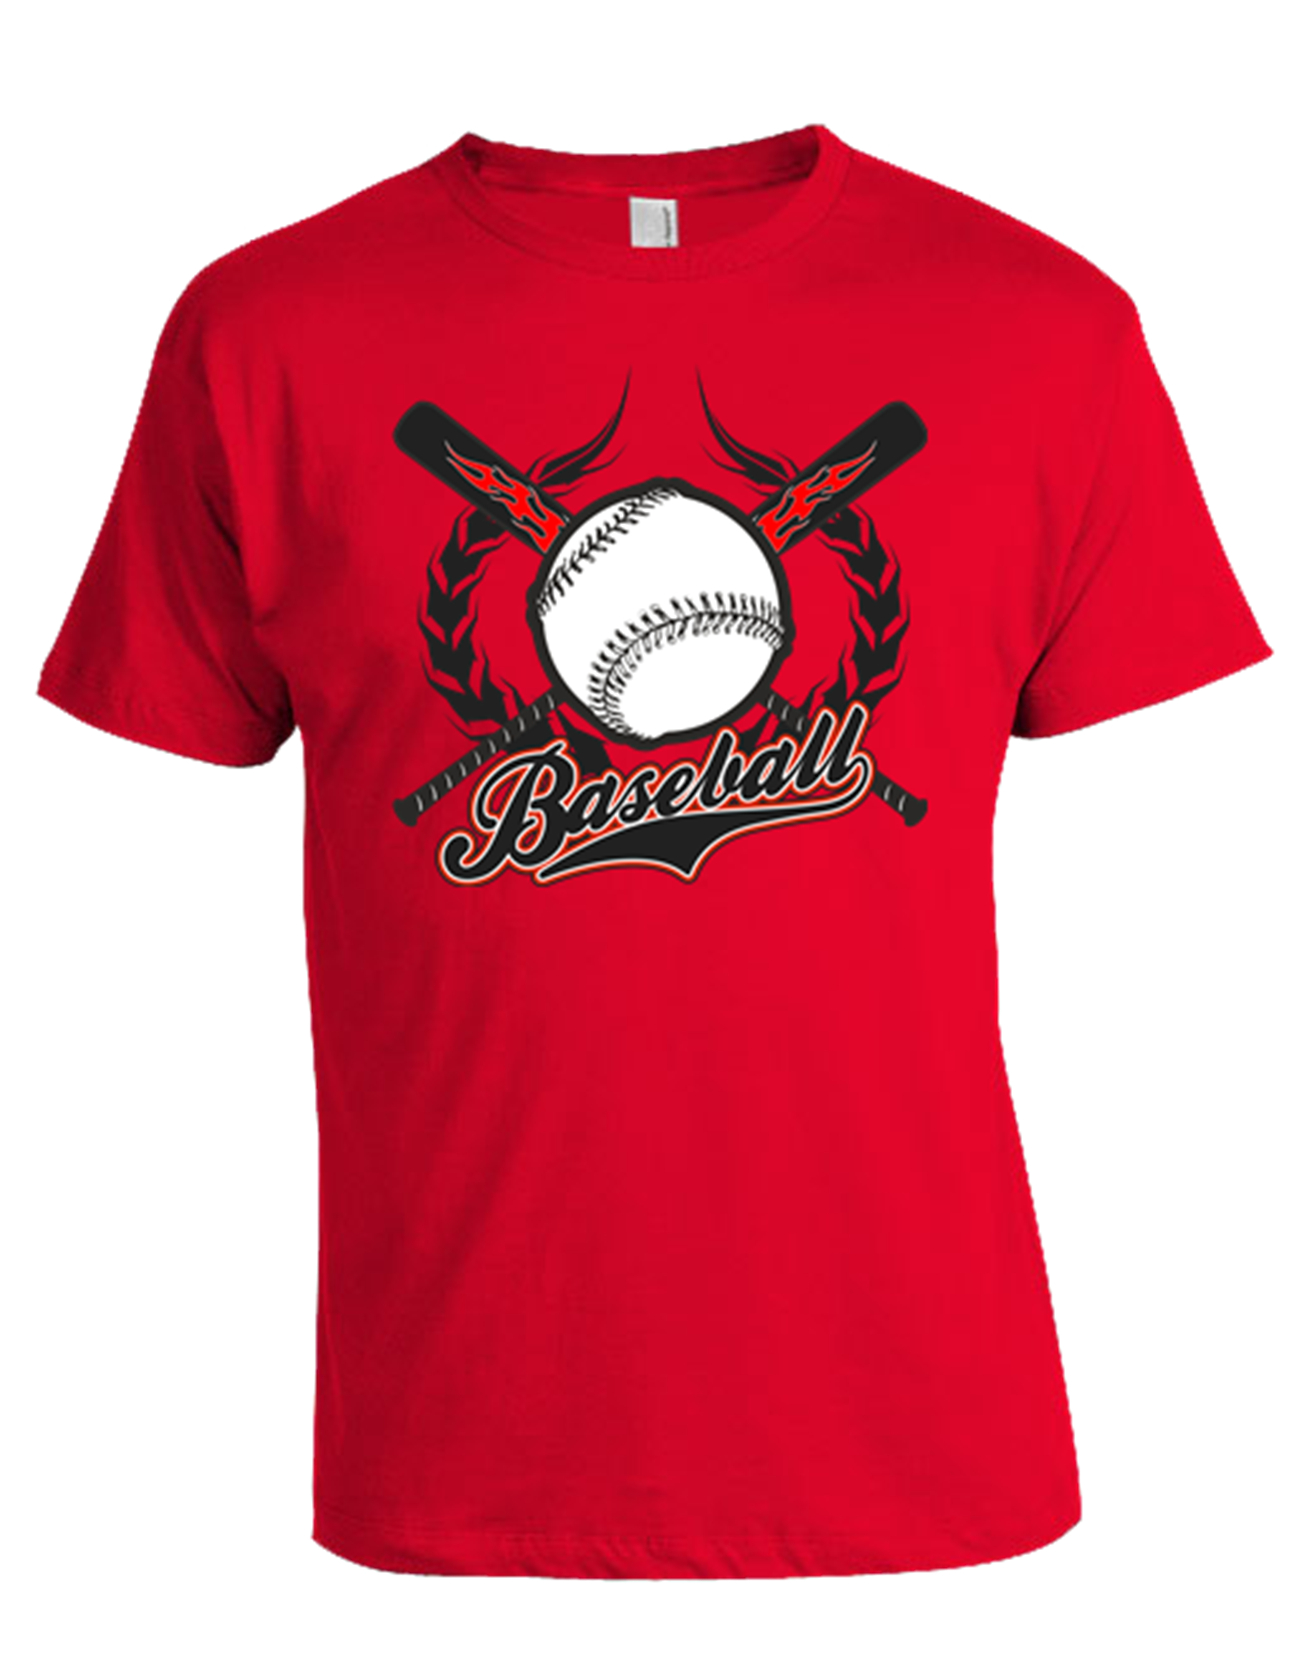 baseball t shirt design ideas home design